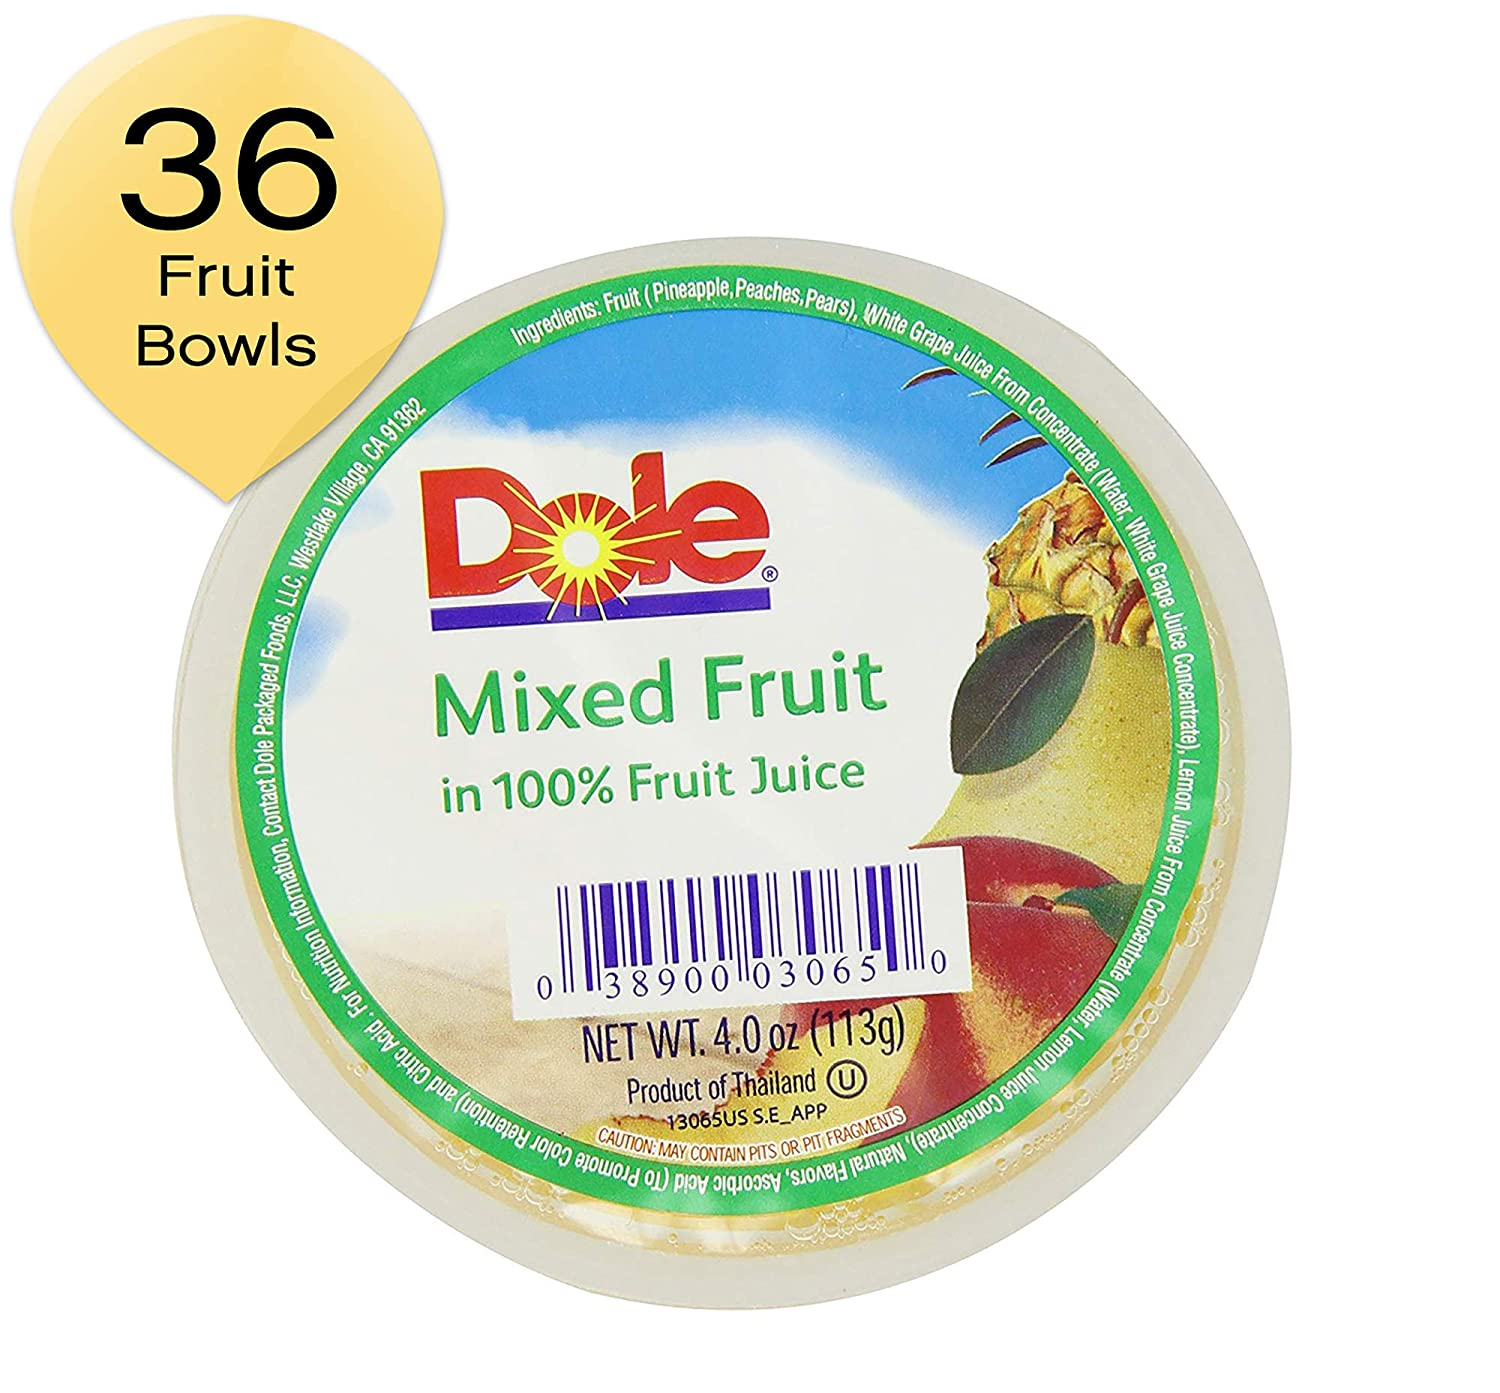 Dole Fruit Bowls, Mixed Fruit in 100% Fruit Juice, 4oz, 36 cups